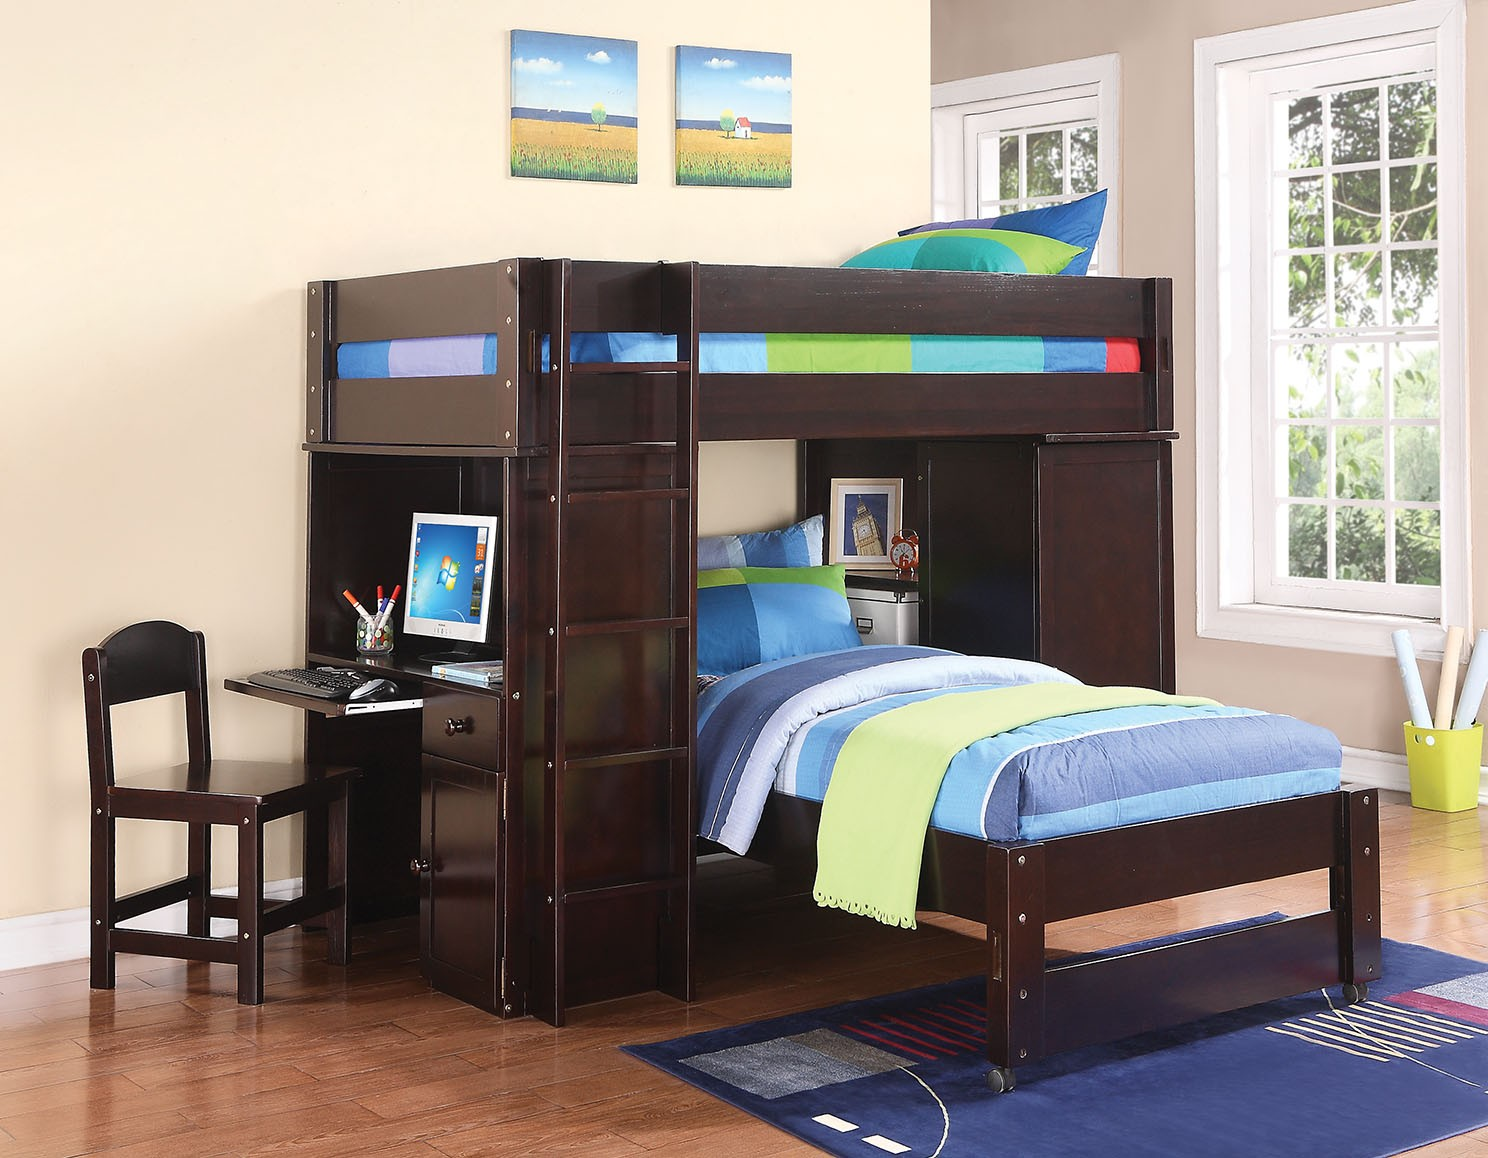 Lars Wenge Twin Loft Bed - Shop for Affordable Home Furniture, Decor ...